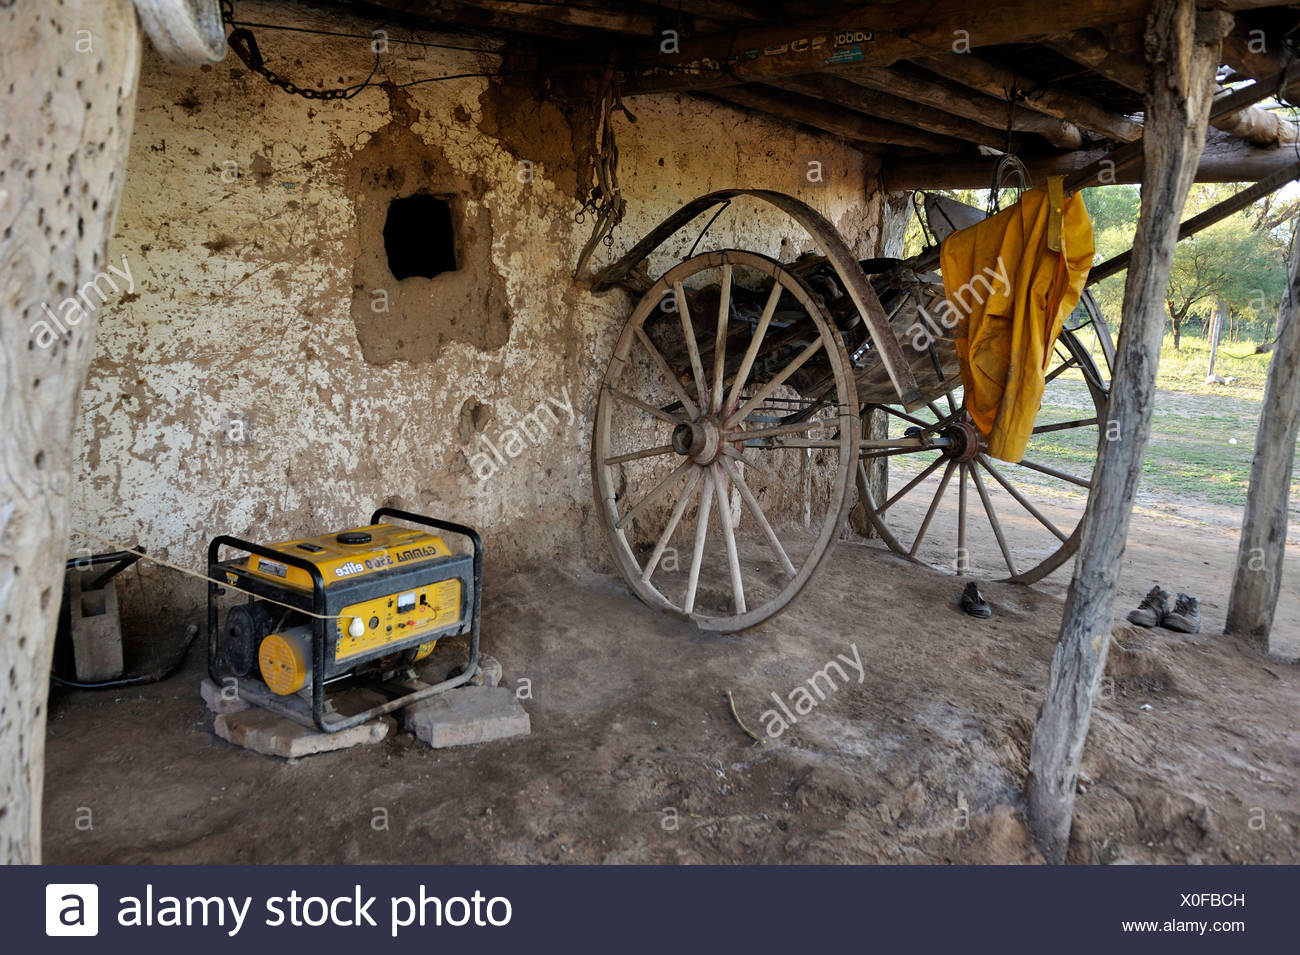 Generator and ox-cart on a small farm, Gran Chaco, Santiago del Estero Province, Argentina, South America - Stock Image